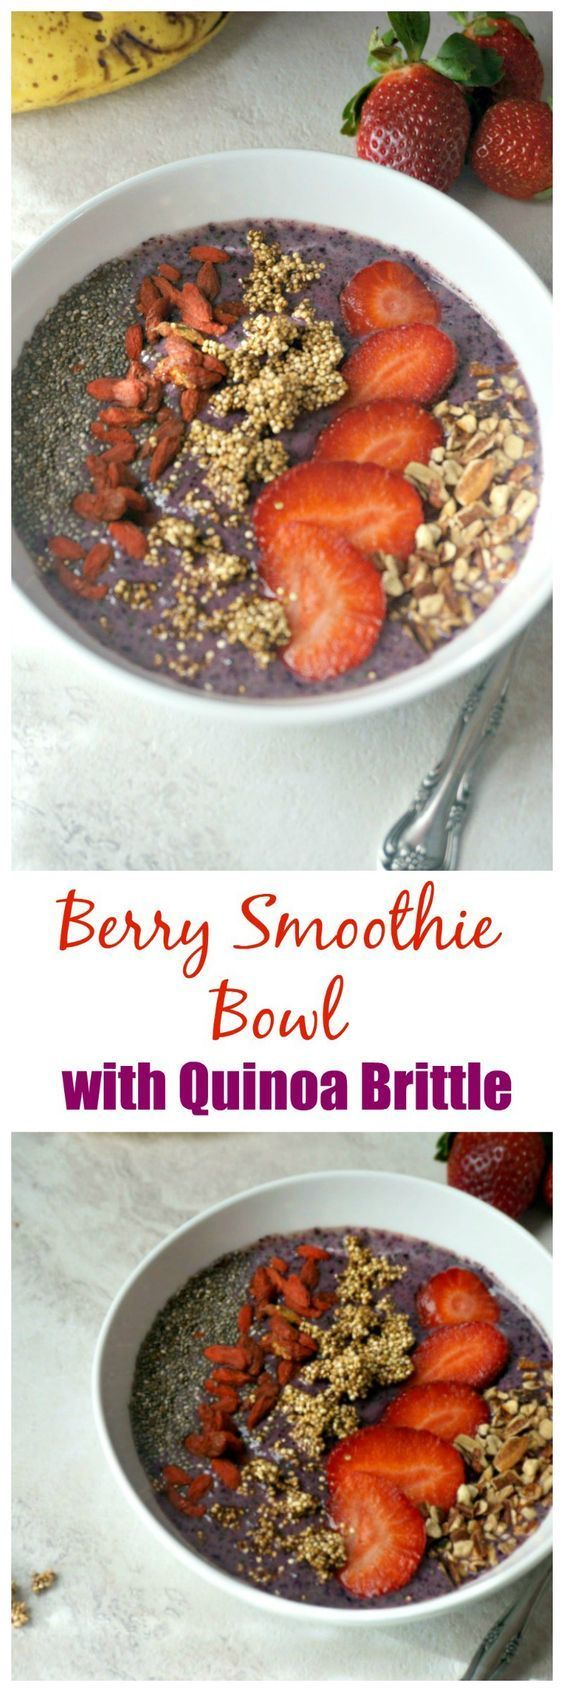 Berry Smoothie Bowl with Quinoa Brittle: Sweet berries are blended together with Greek yogurt and topped with toasted nuts, chia seeds, fresh berries and dried Goji berries, and the star of the show--Quinoa Brittle. This is one nutrient packed smoothie bowl!